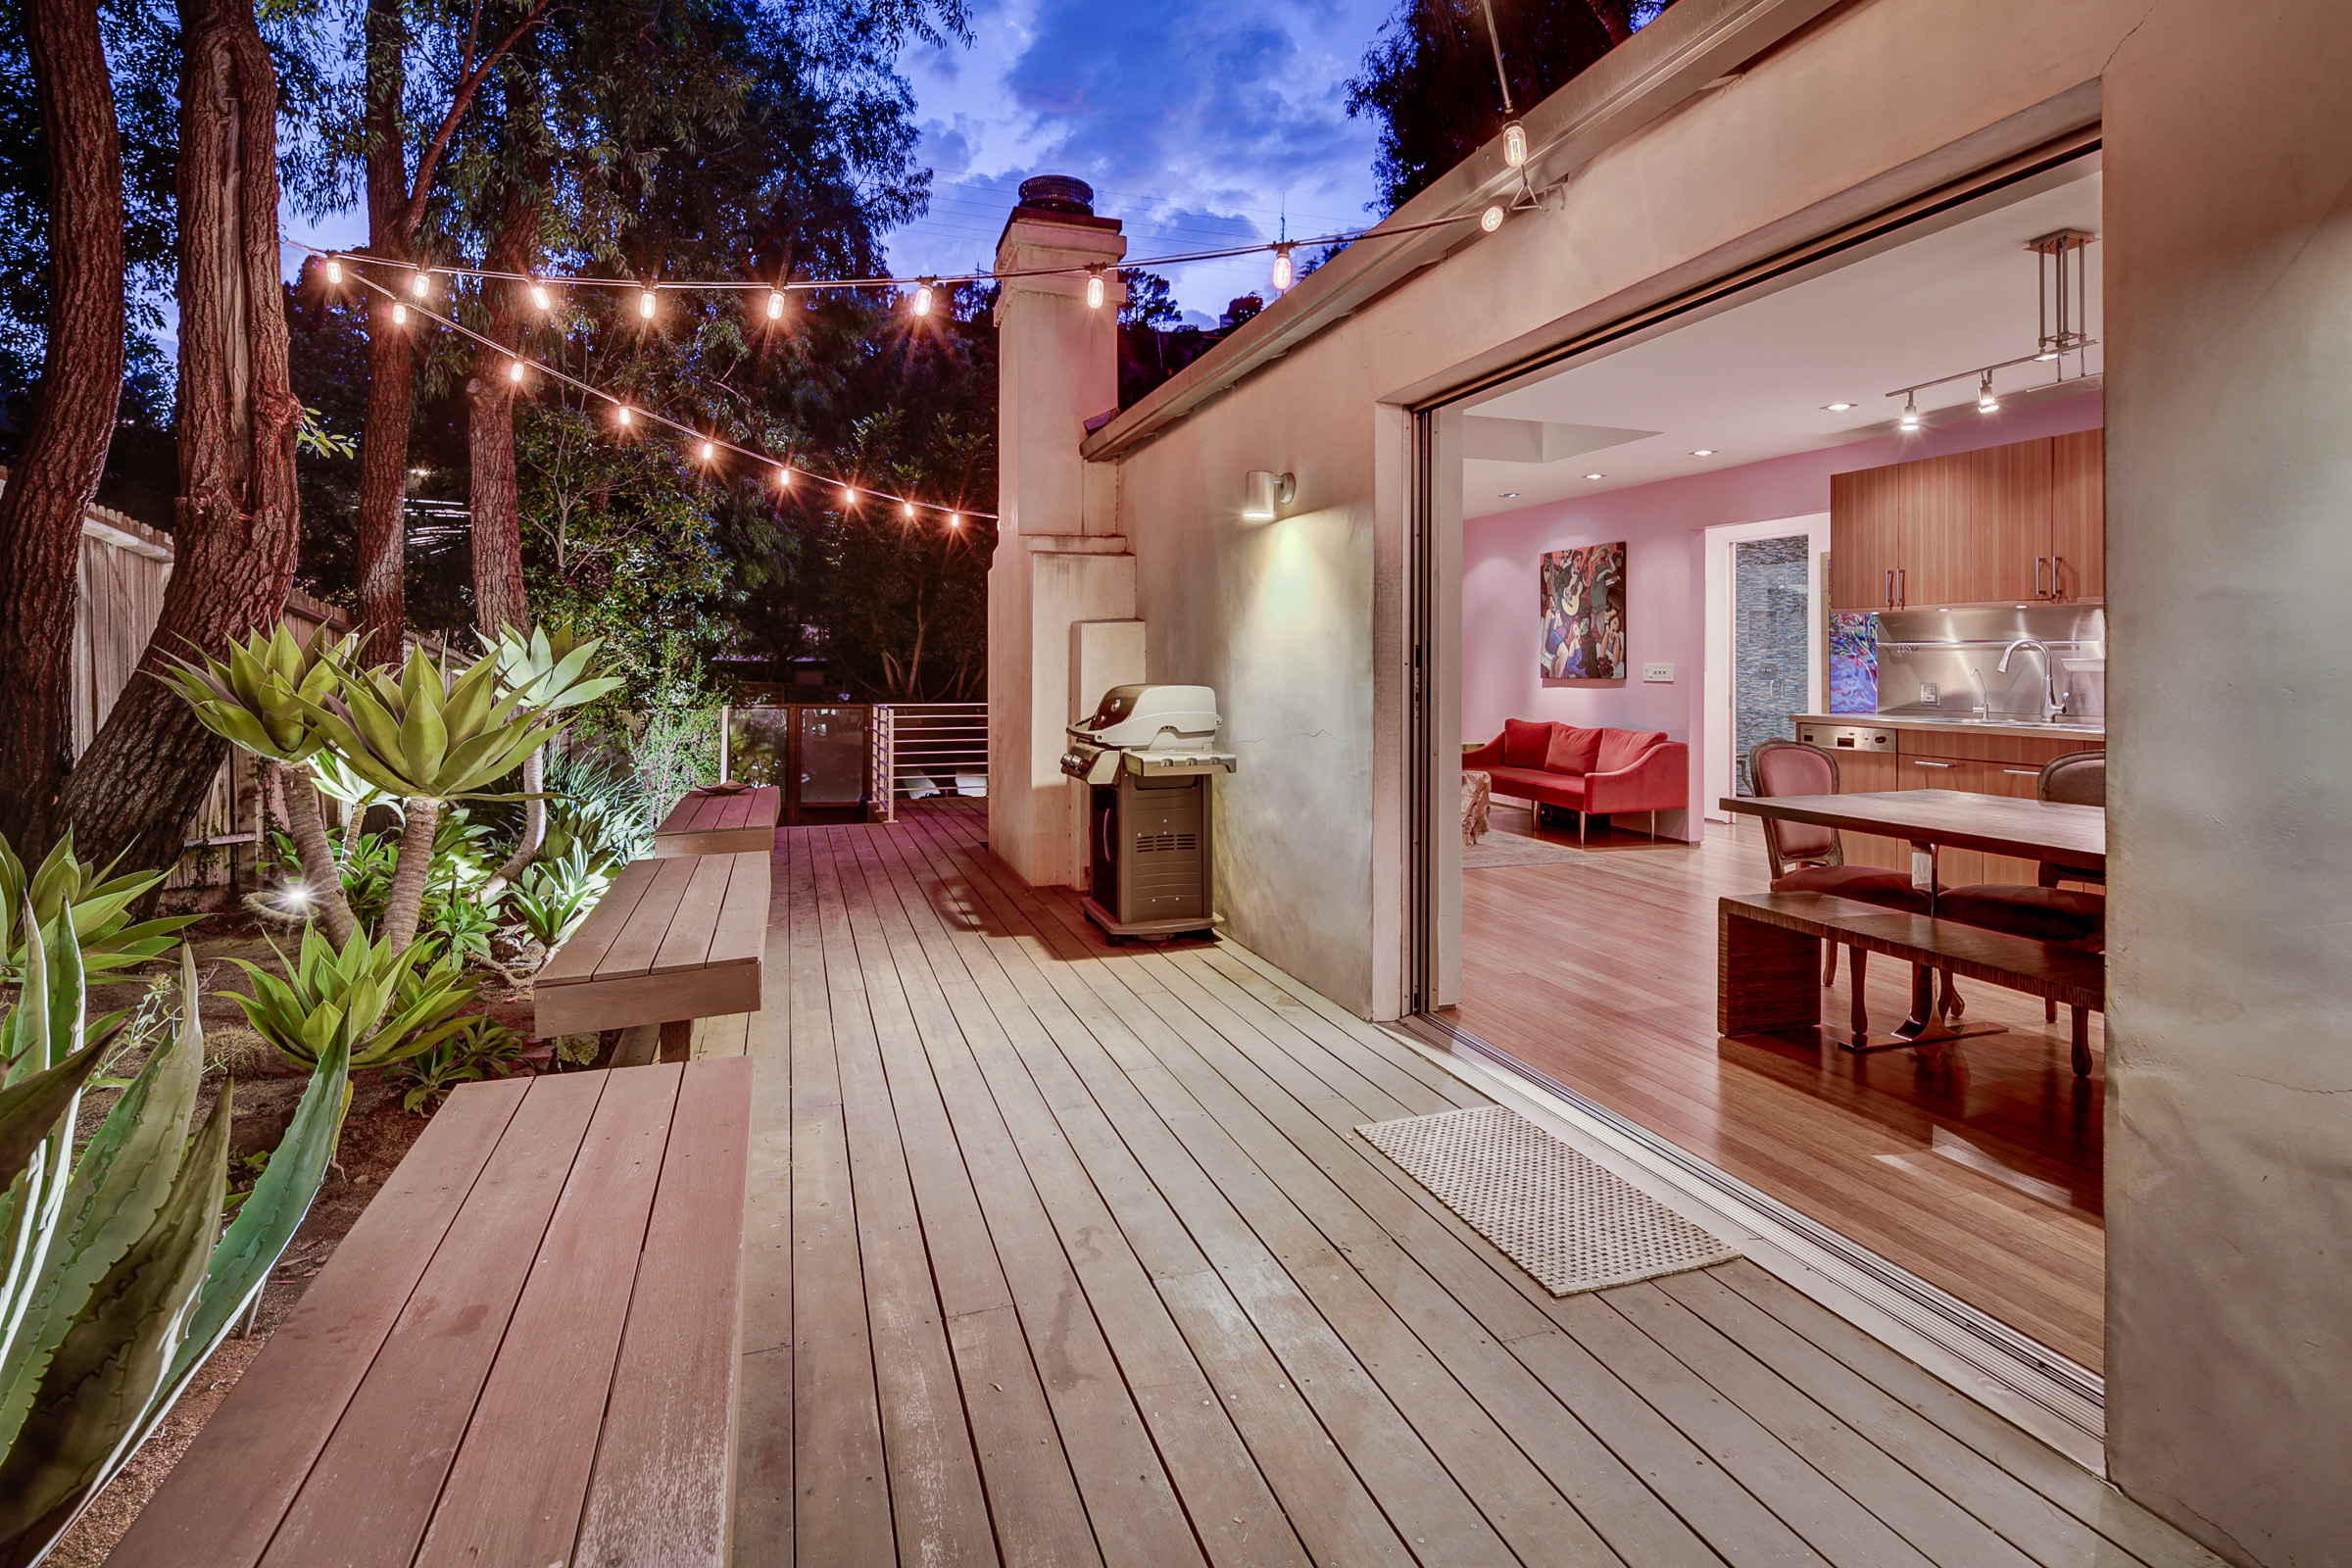 2050 stanley hills drive-23 deck to living room and dining room at twilight.jpg